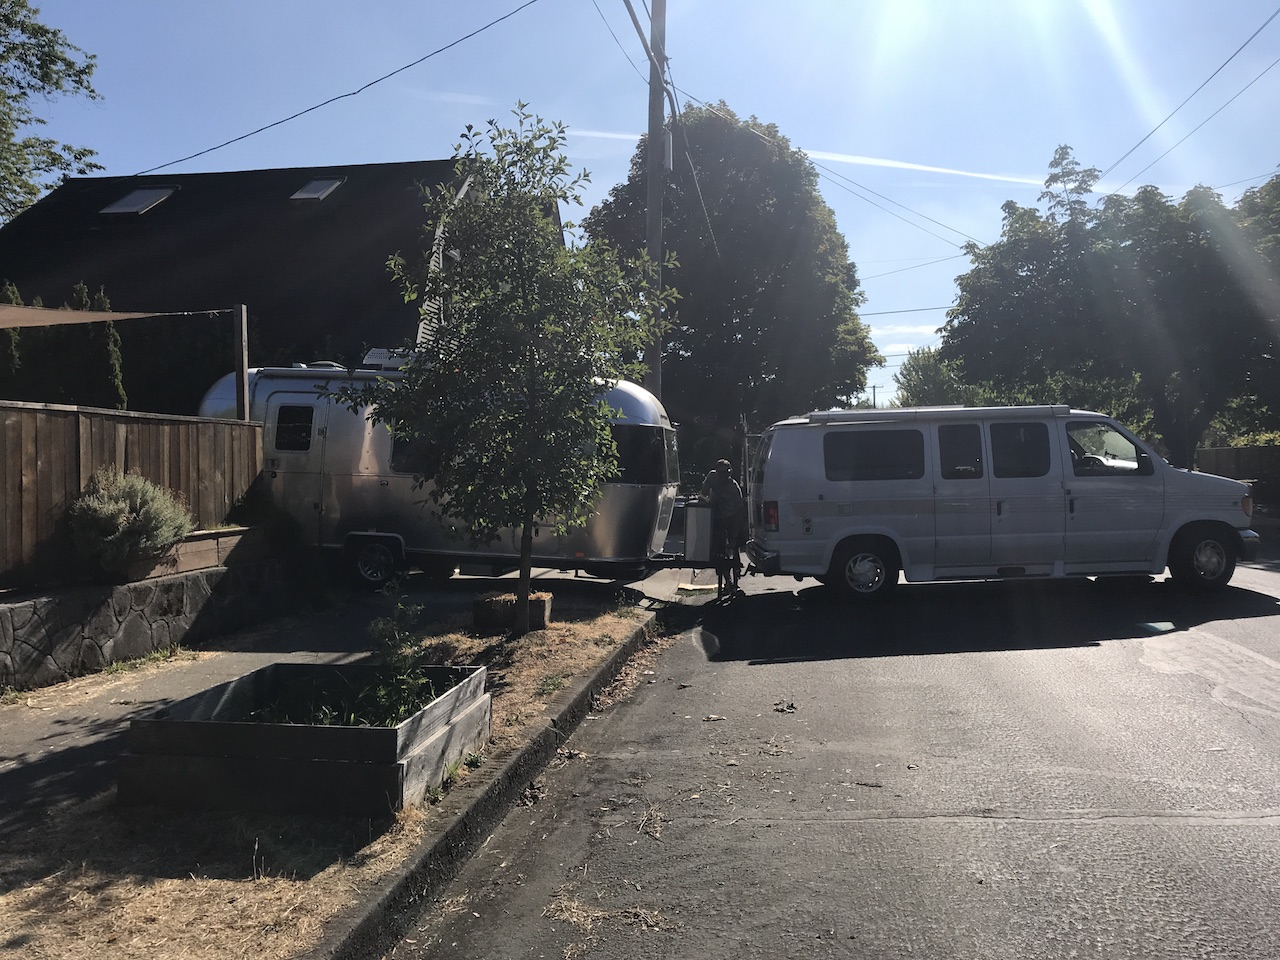 Giving our Airstream a lift – Wacky Wanderers